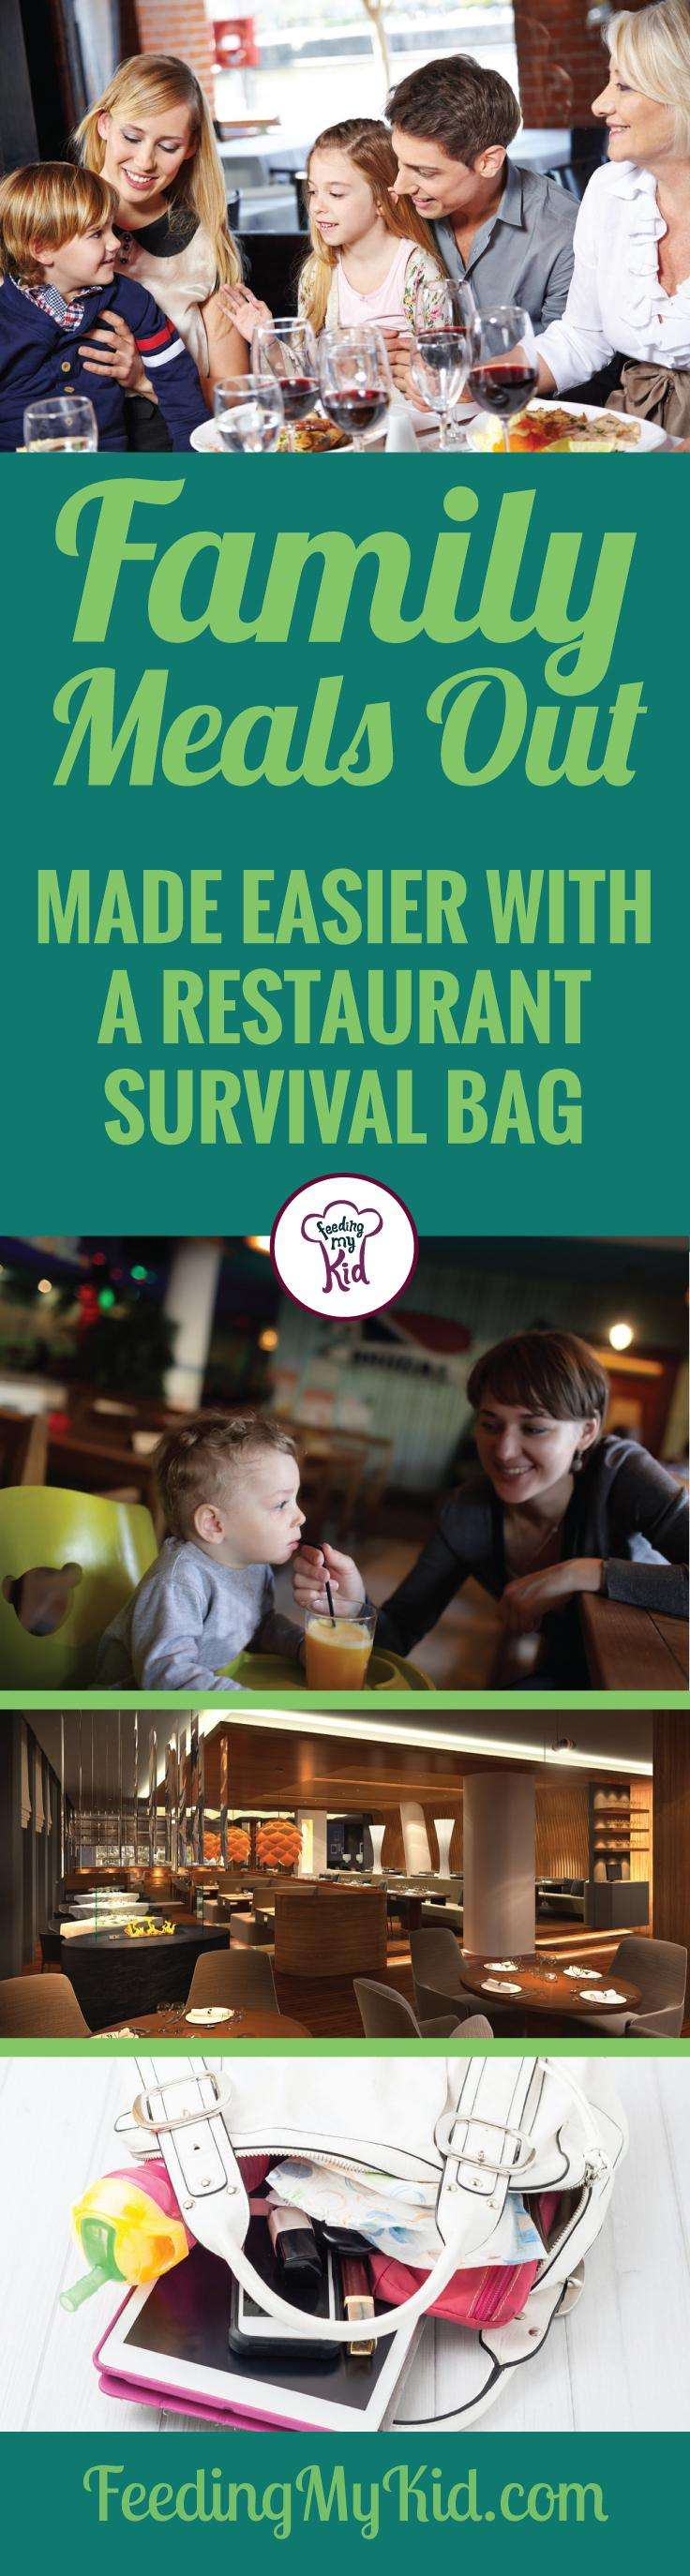 Parents, you know going out to eat for family meals with a toddler can go really good or really bad. Tips and hacks using your survival bag!